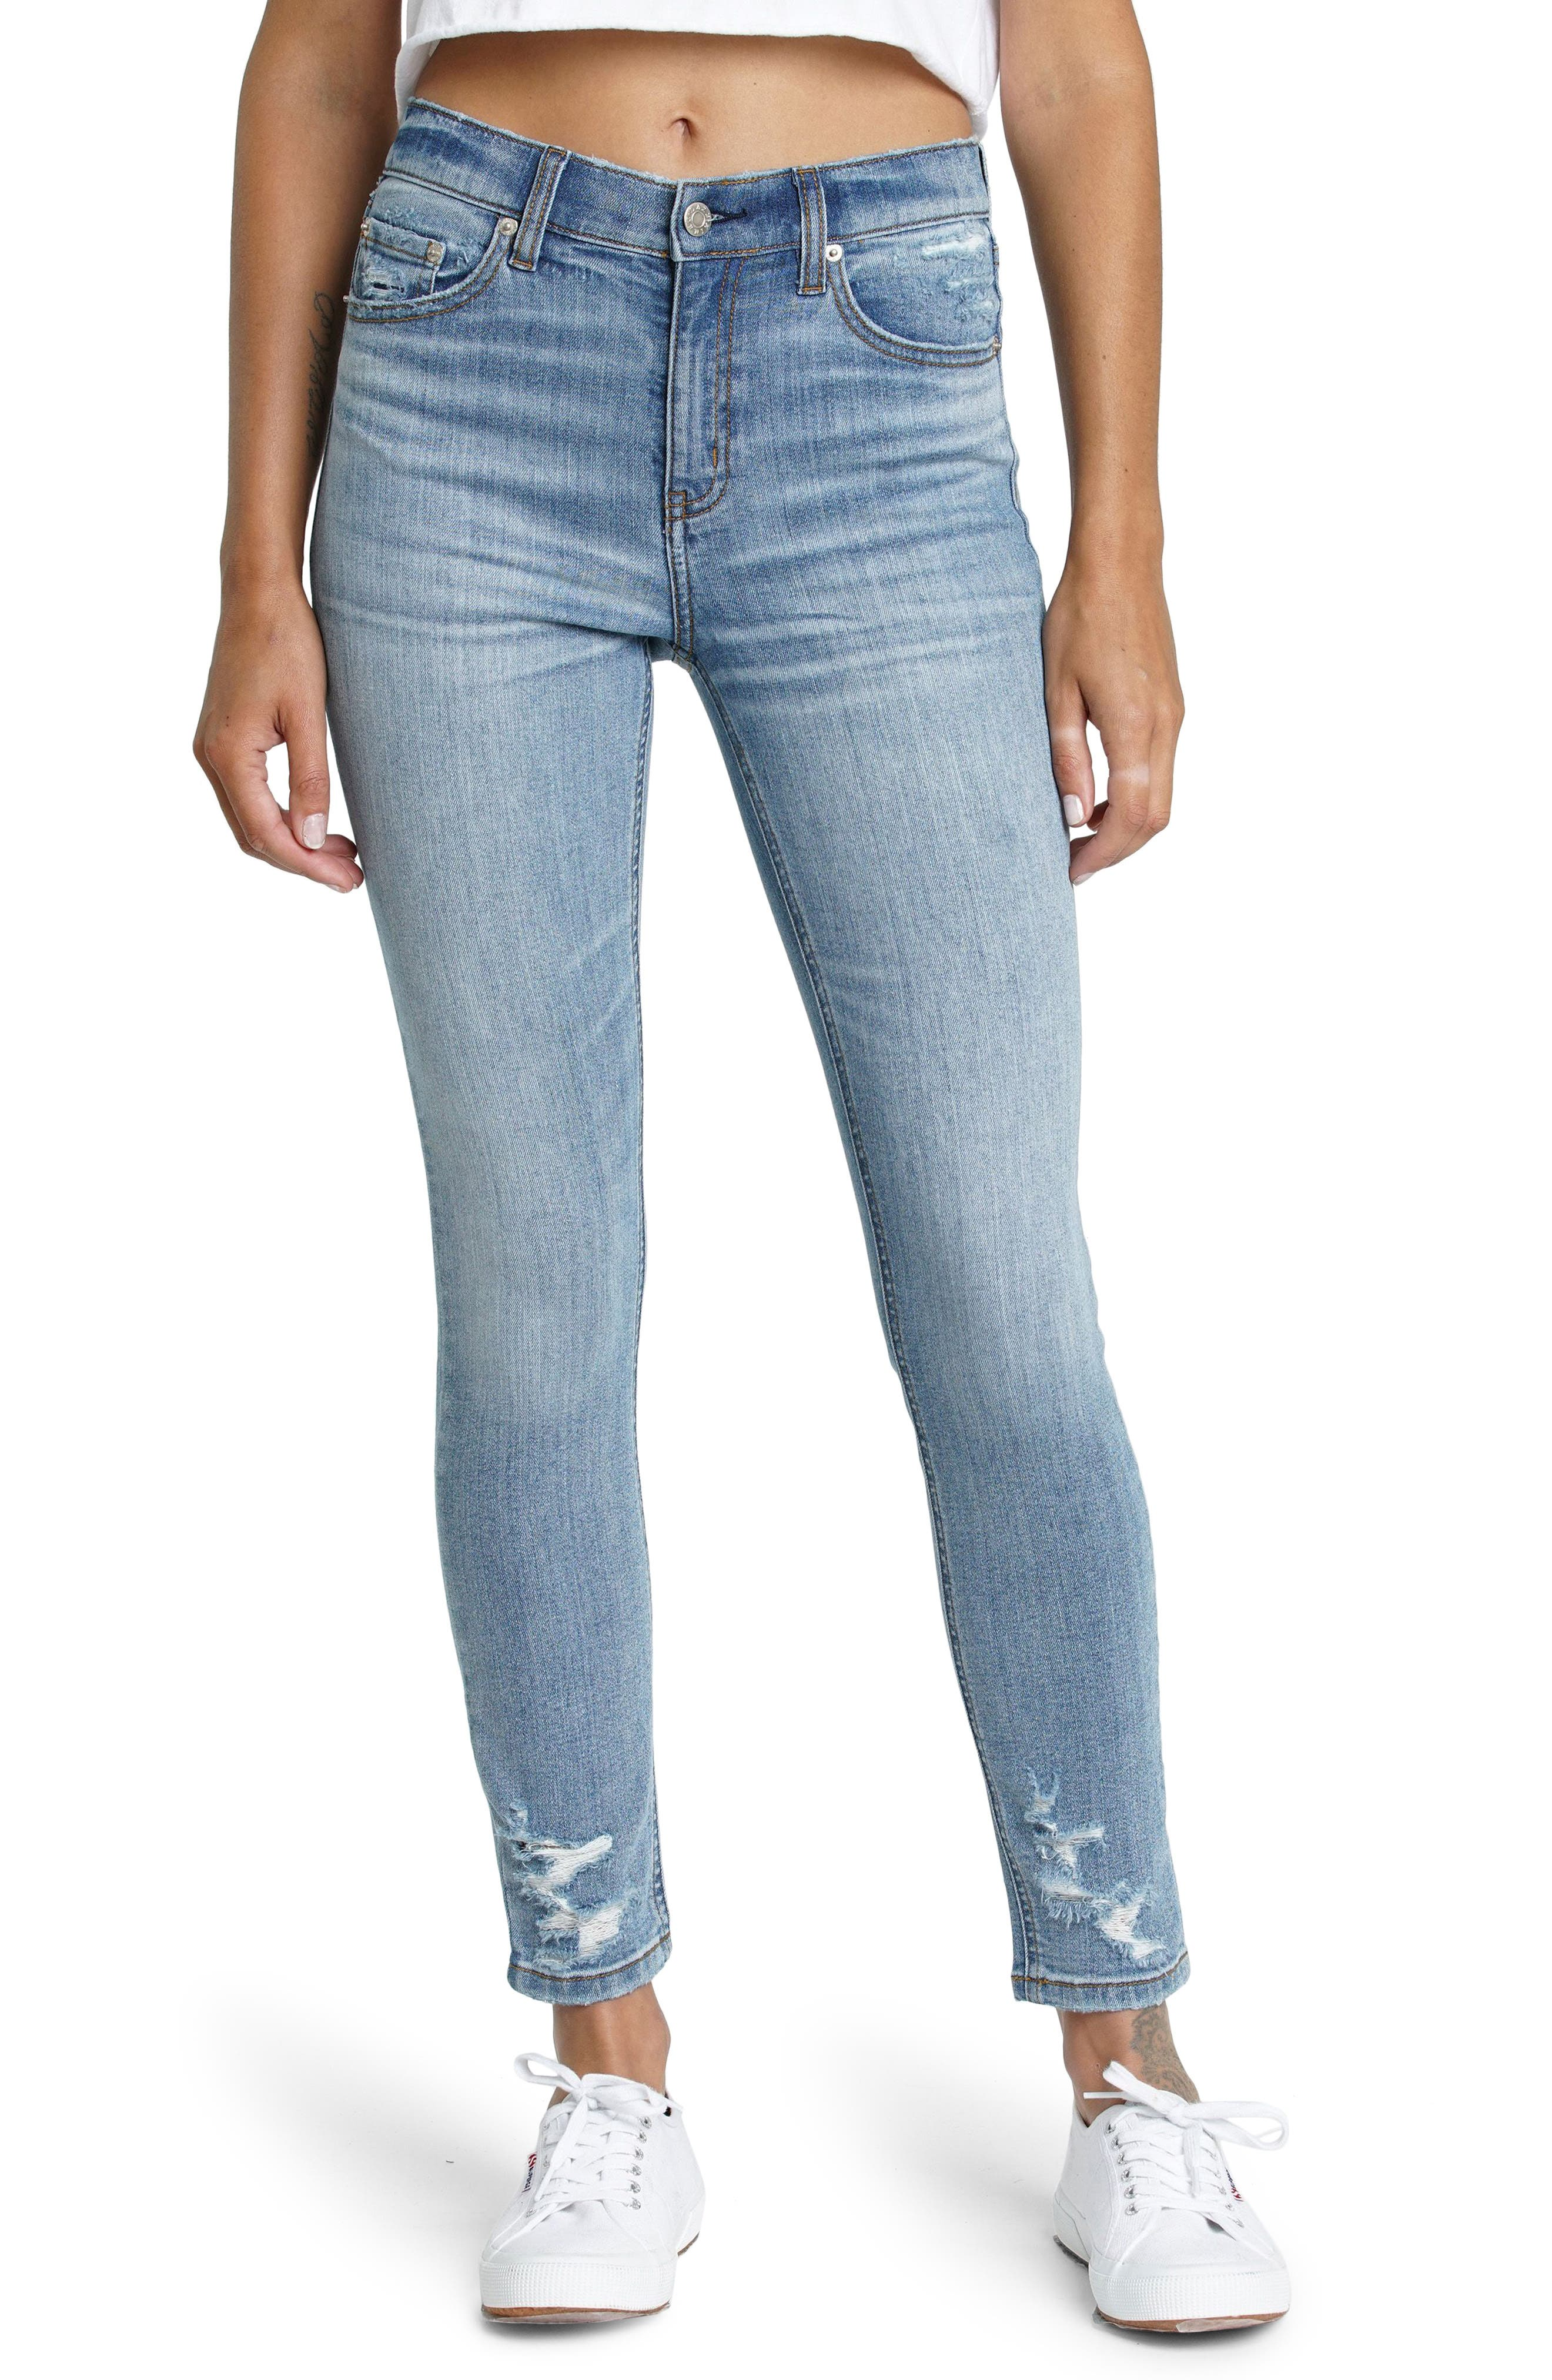 Call You Back Distressed High Waist Ankle Skinny Jeans